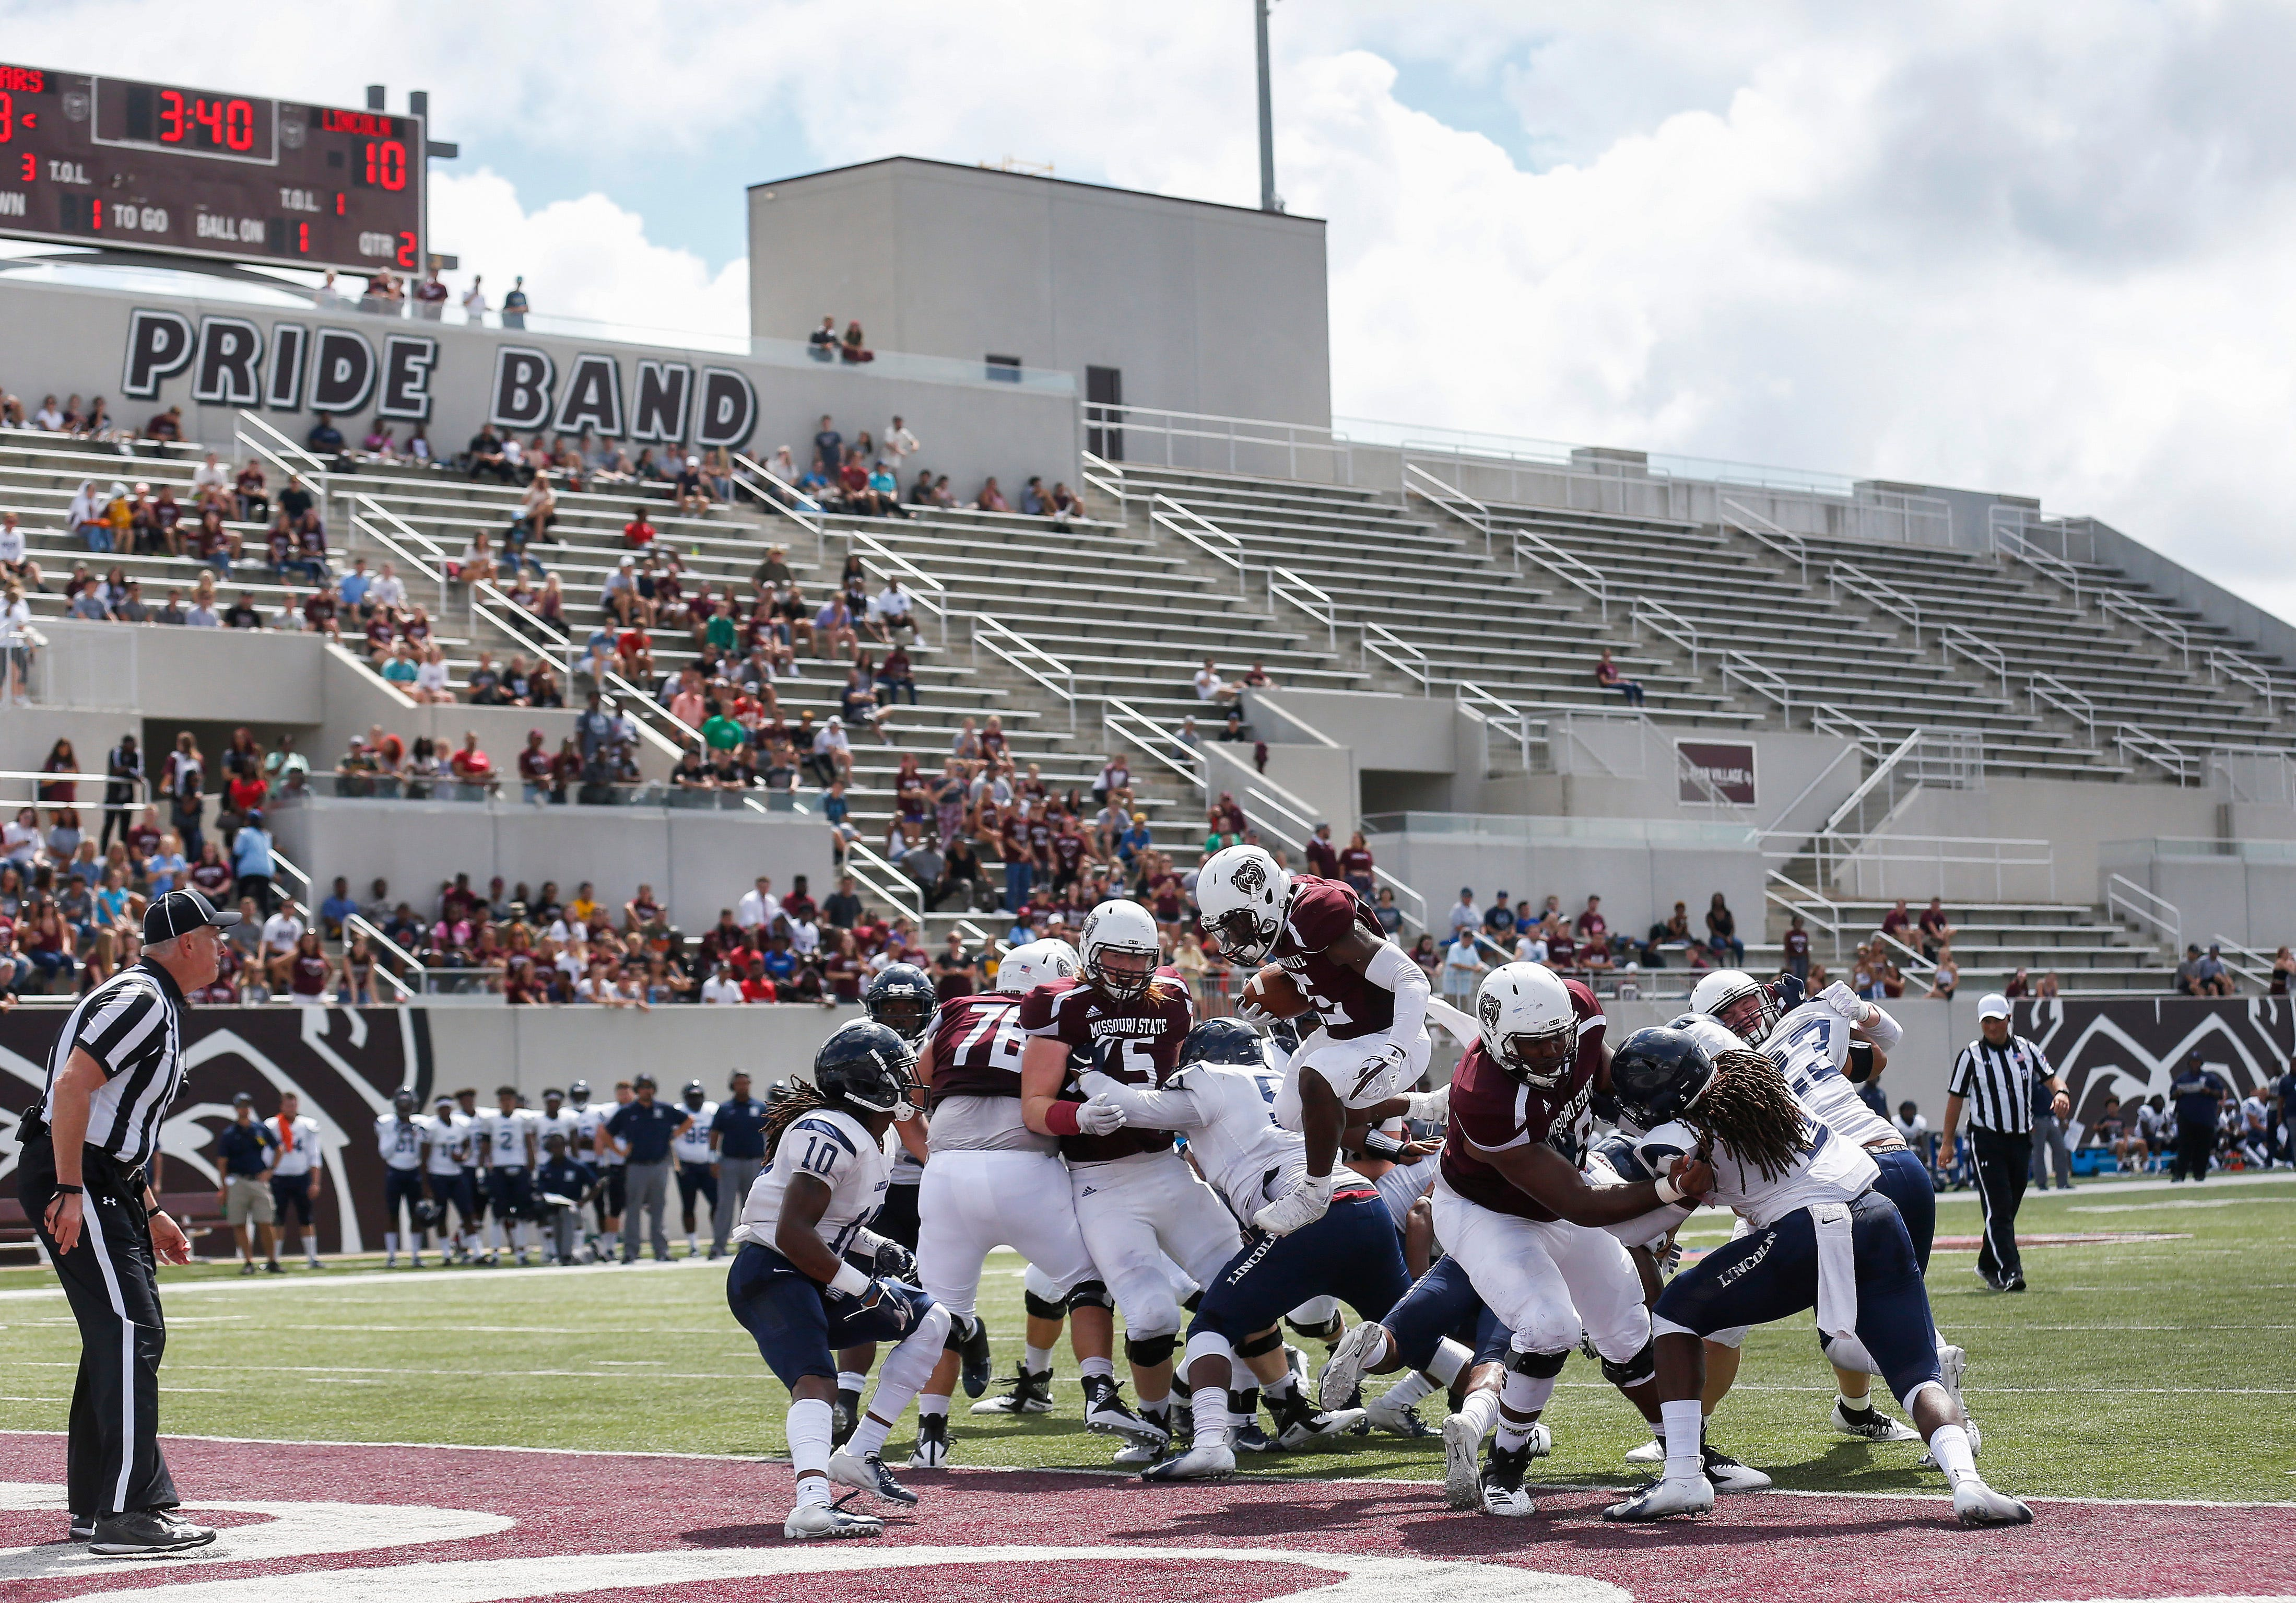 Jason Randall, of Missouri State University, leaps into the endzone during the Bears' home opener at Plaster Stadium against Lincoln University on Thursday, Sep. 6, 2018.